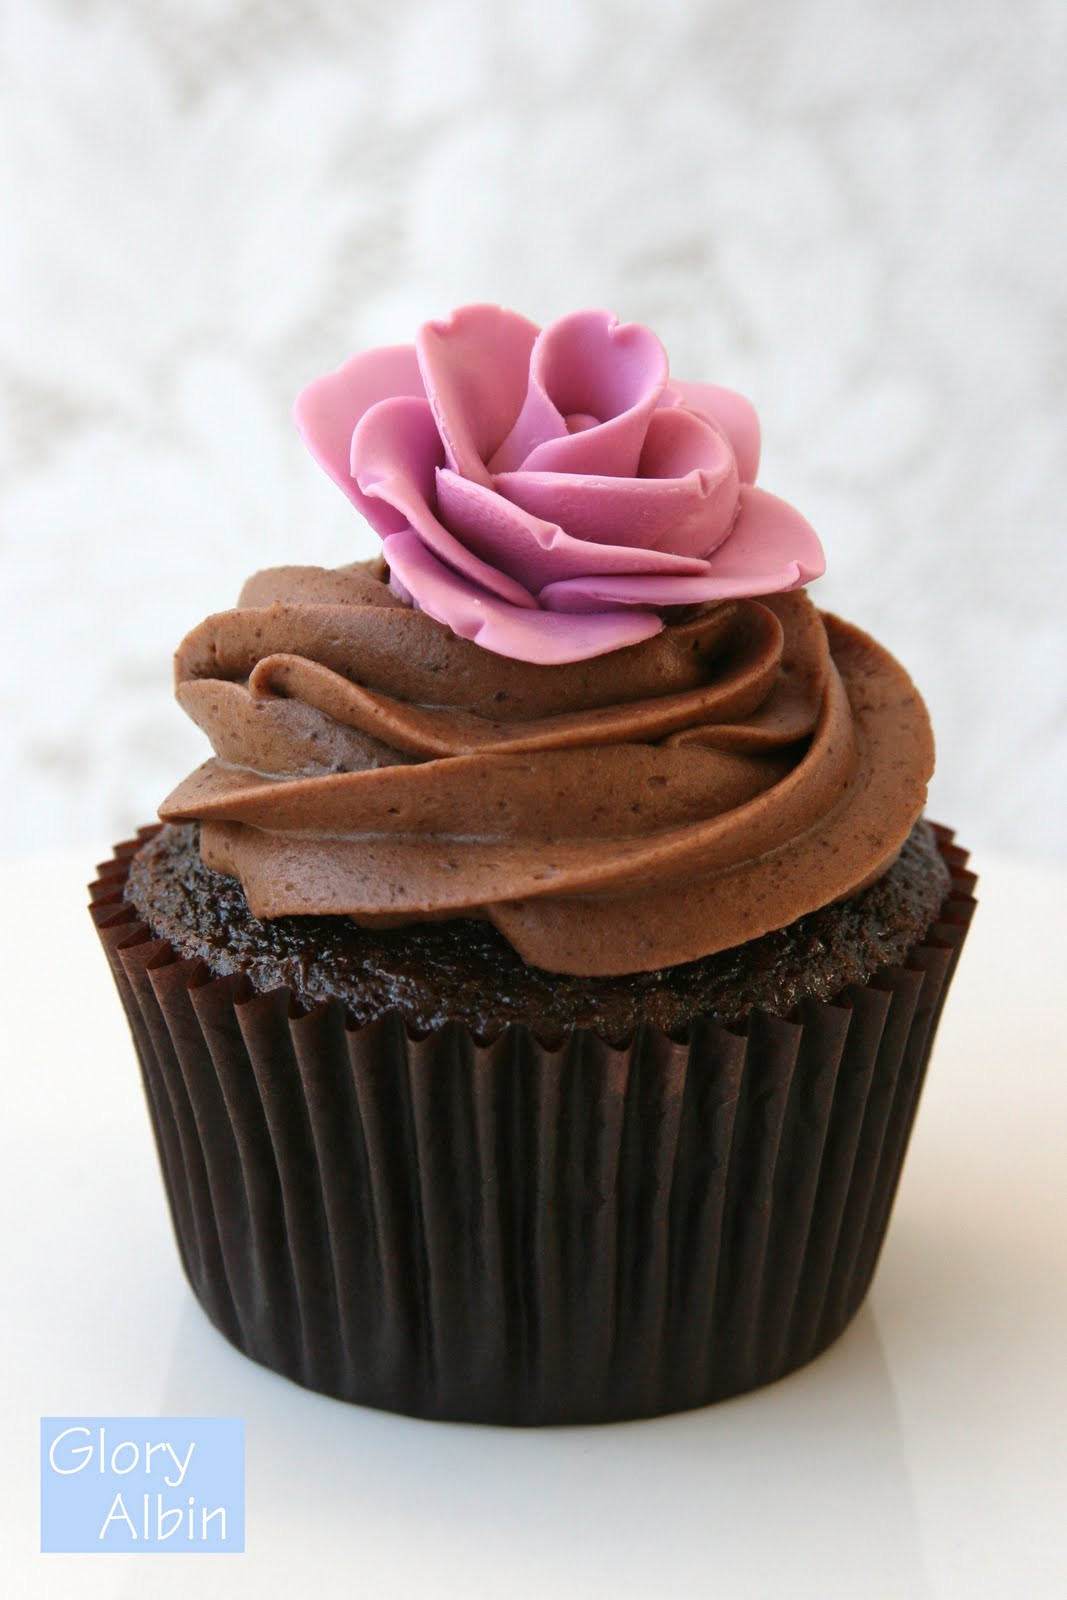 Chocolate Cupcakes From Scratch  Glorious Treats Recipe Perfectly Chocolate Cupcakes